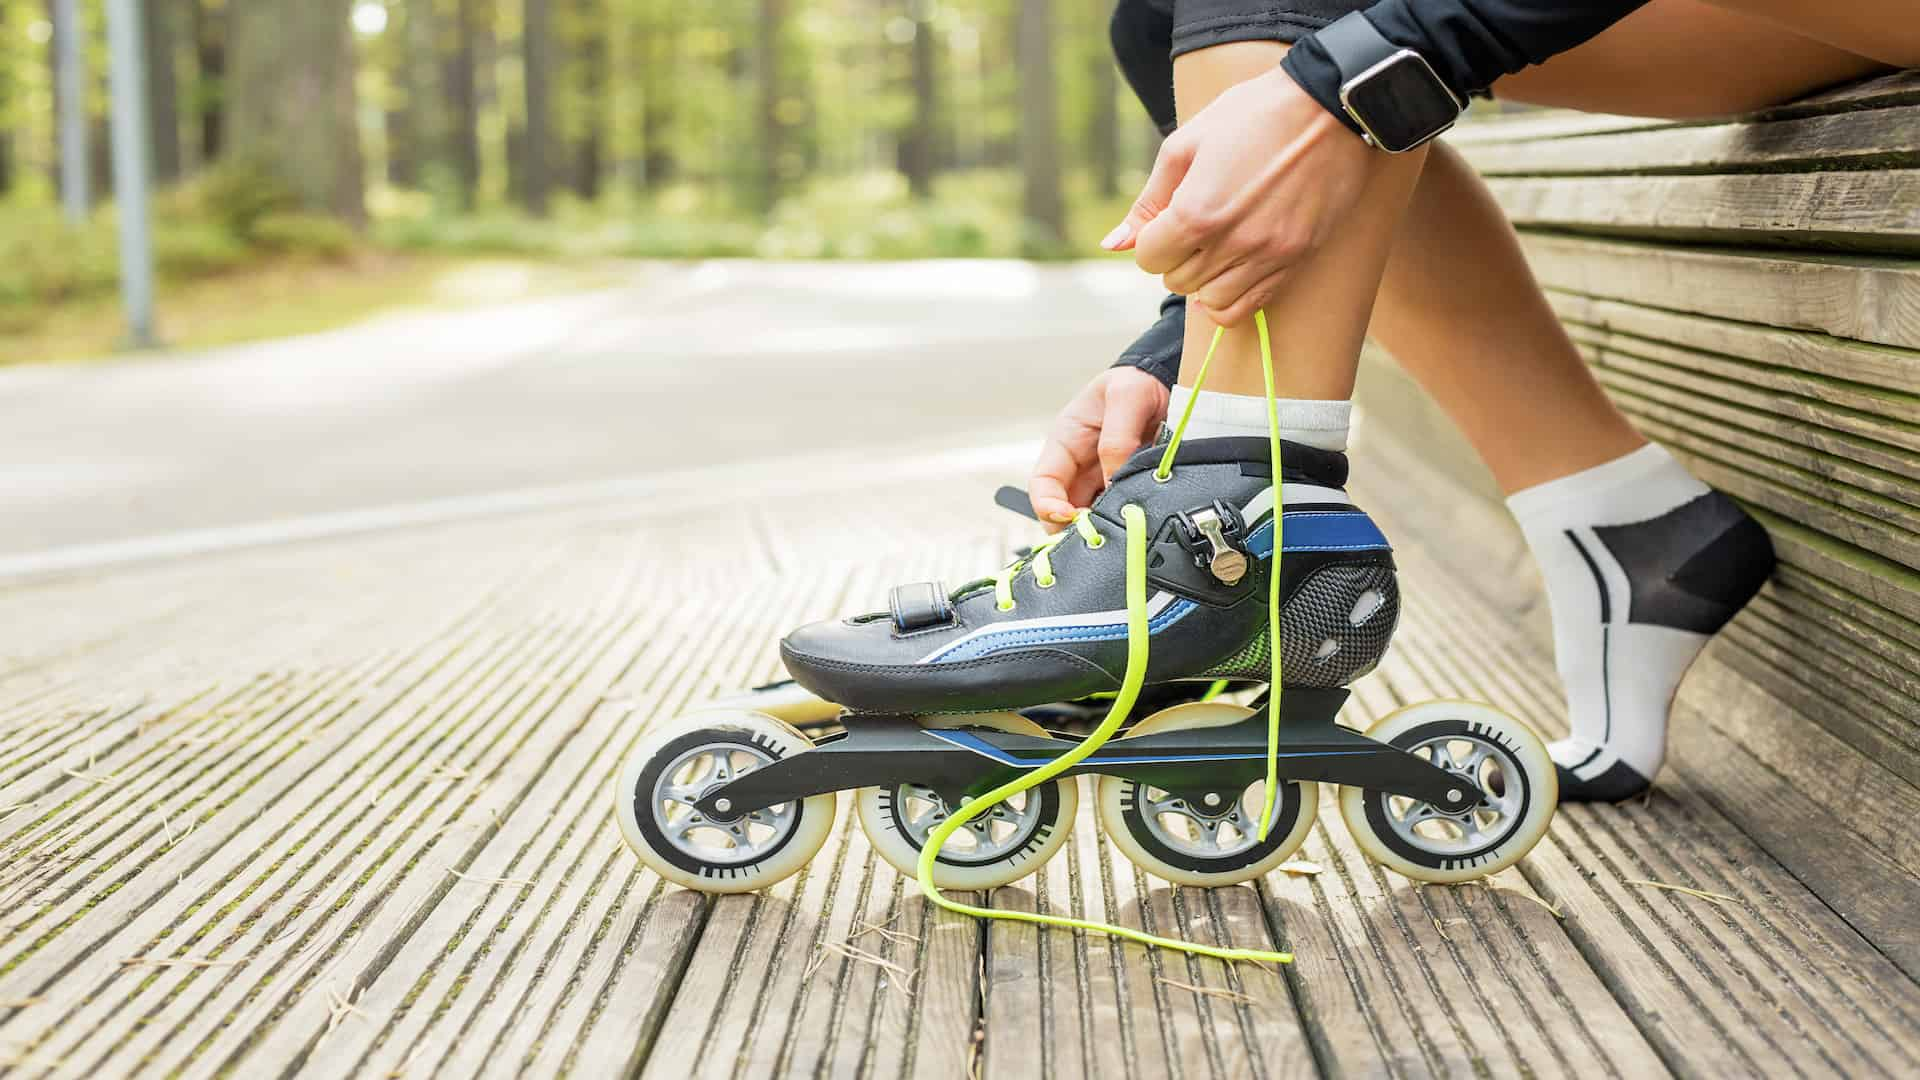 Best Roller Blades 2020: Shopping Guide & Review